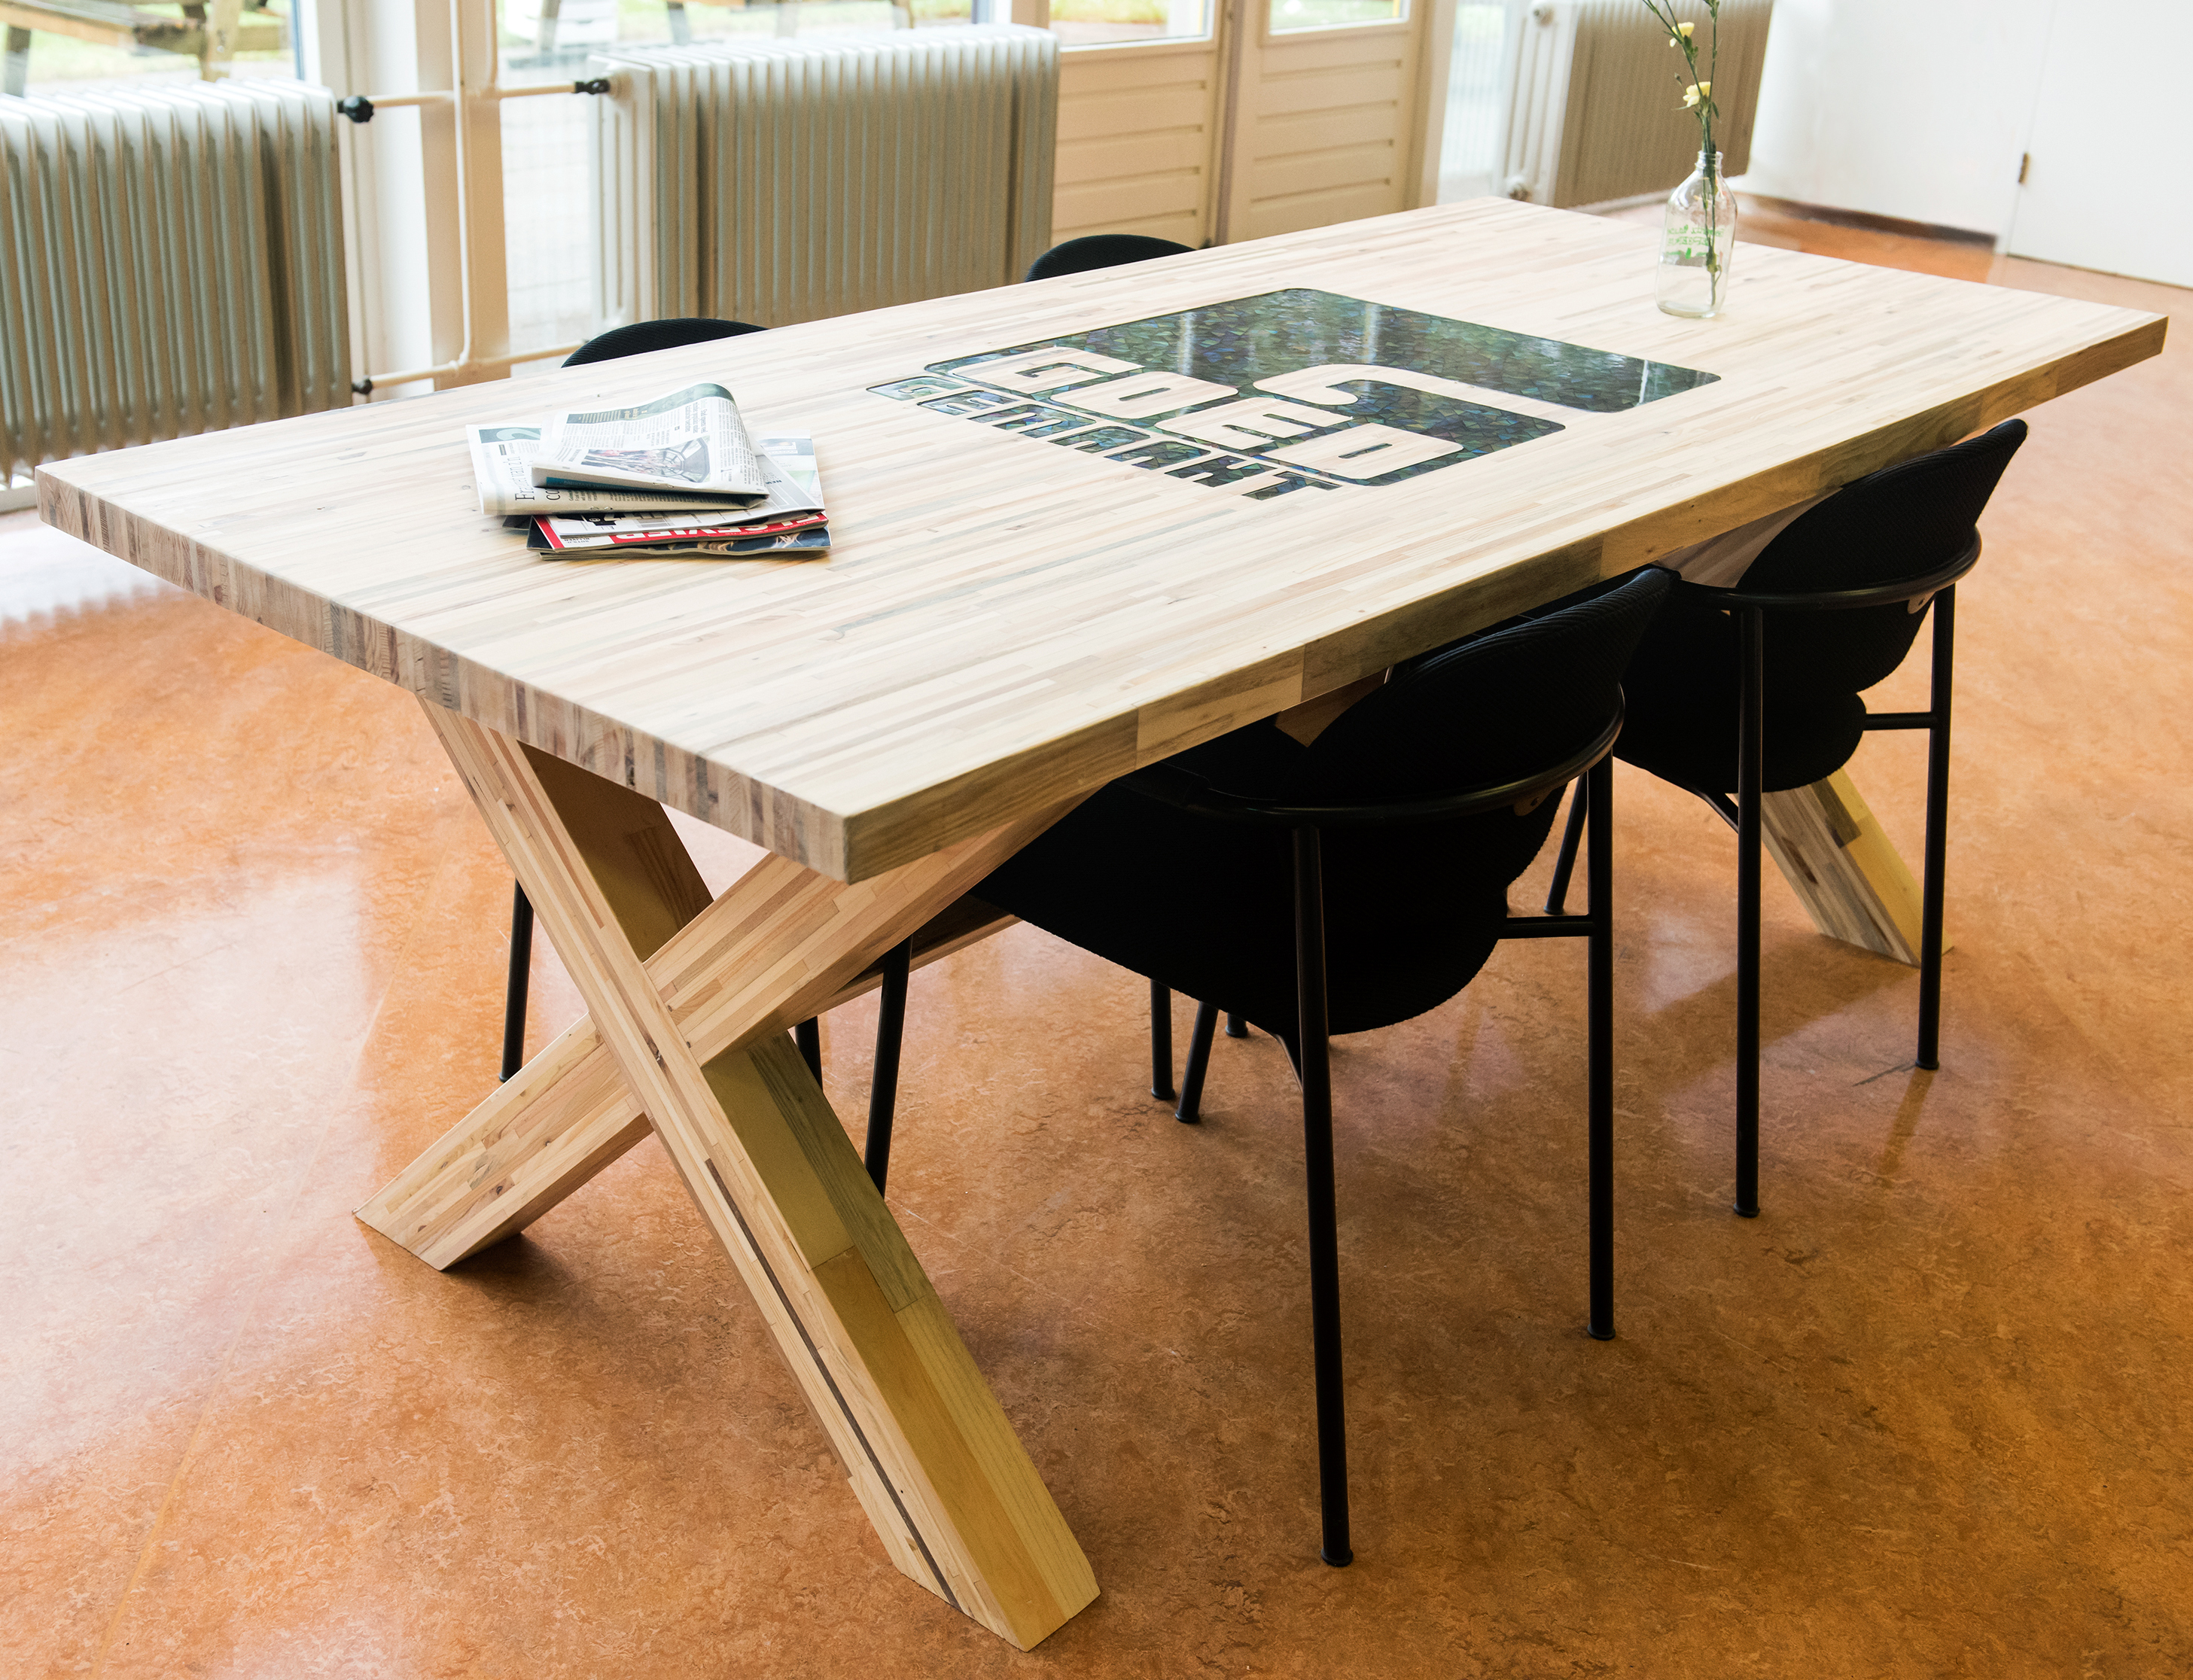 tafel gerecycled hout